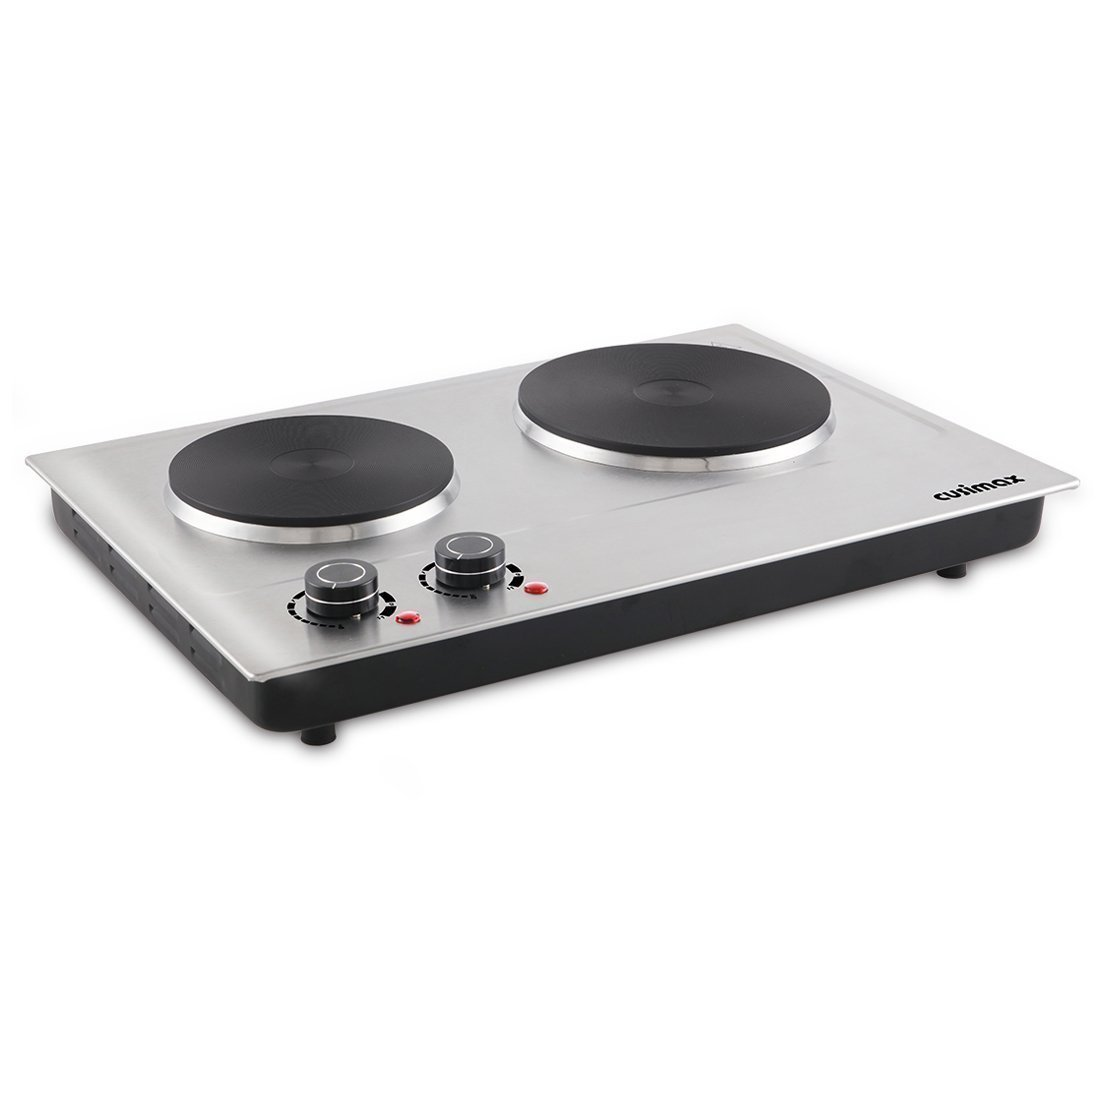 Best Countertop Burner Reviews for the Modern Kitchen 6